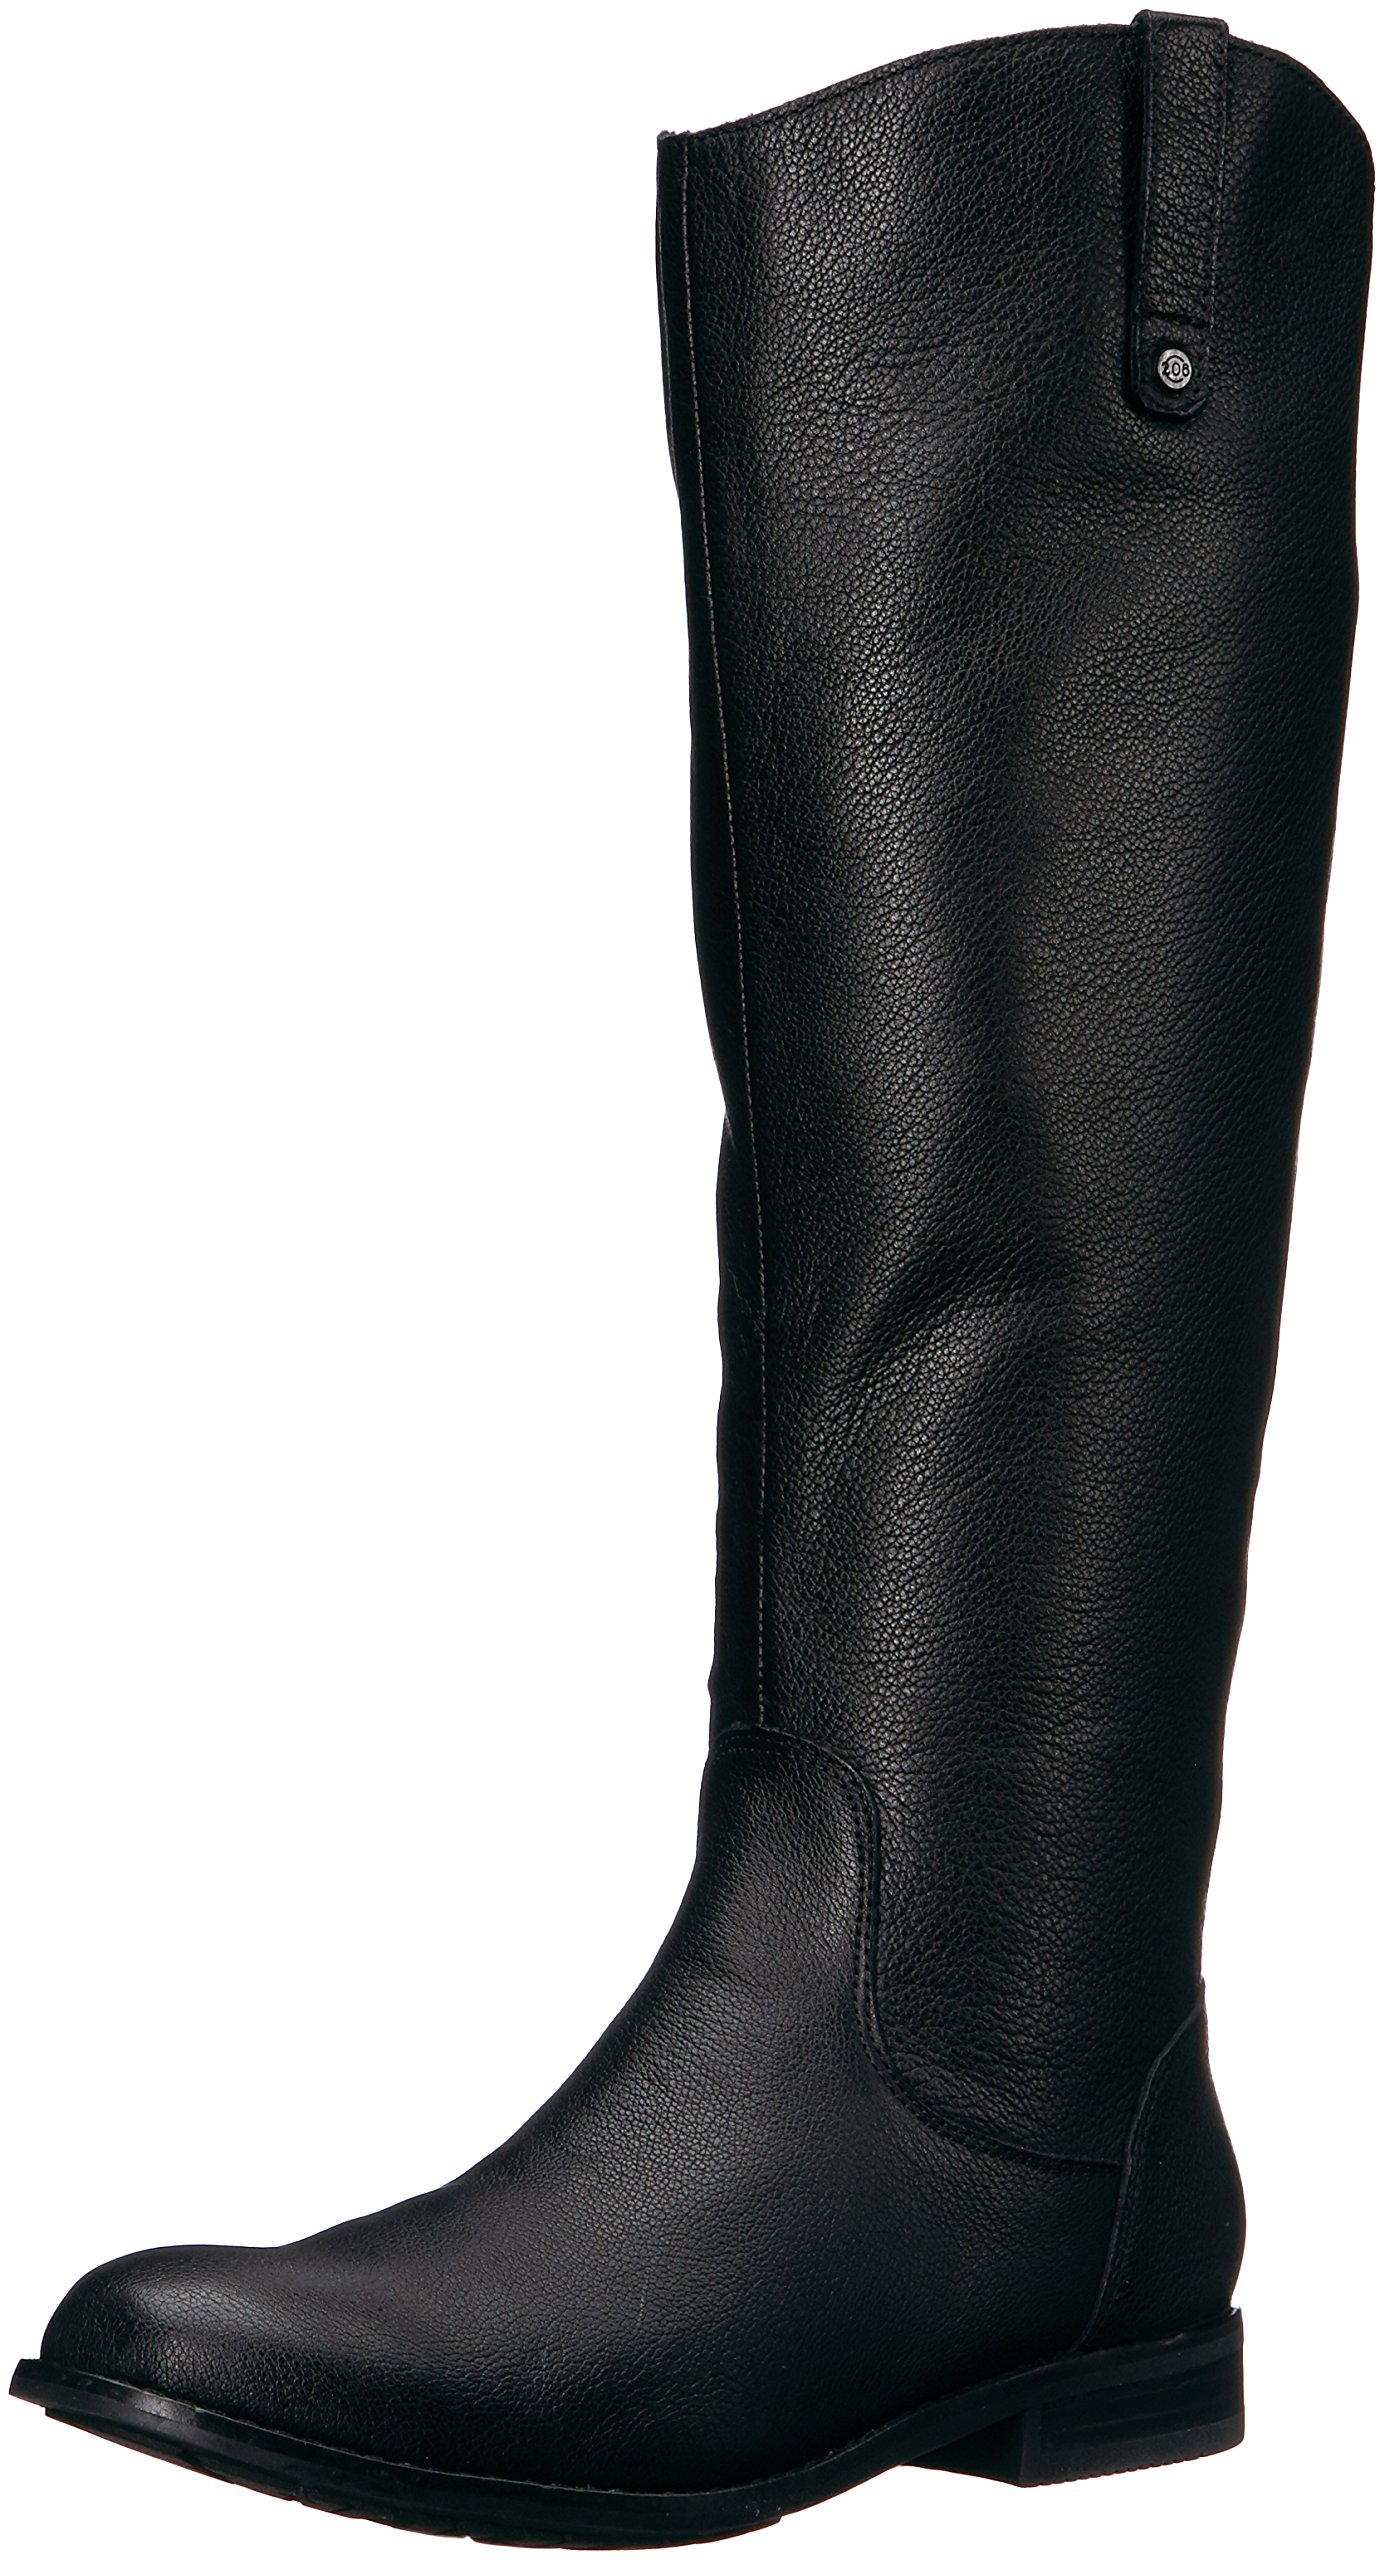 206 Collective Women's Whidbey Riding Boot, Black, 9 B US